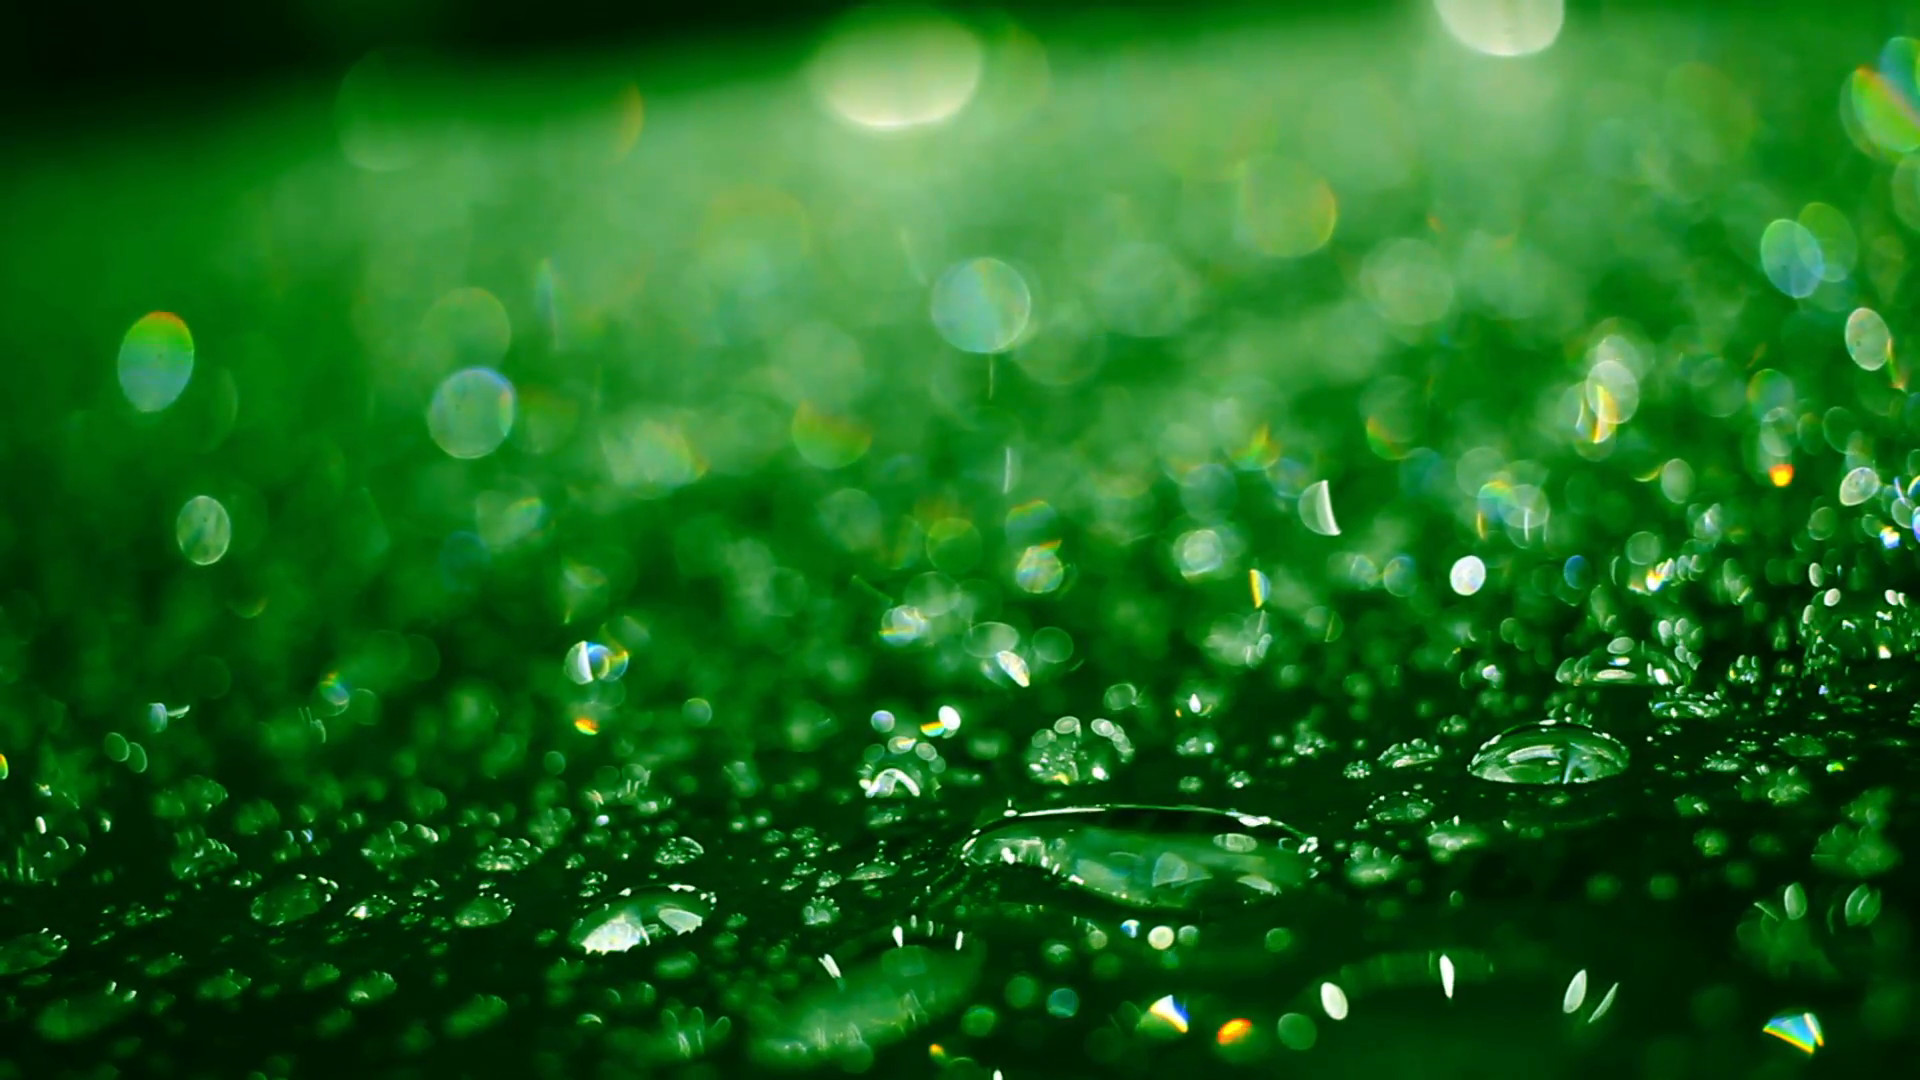 Drop Of Water Falling From A Leaf Wallpaper Water Droplet Background 183 ①